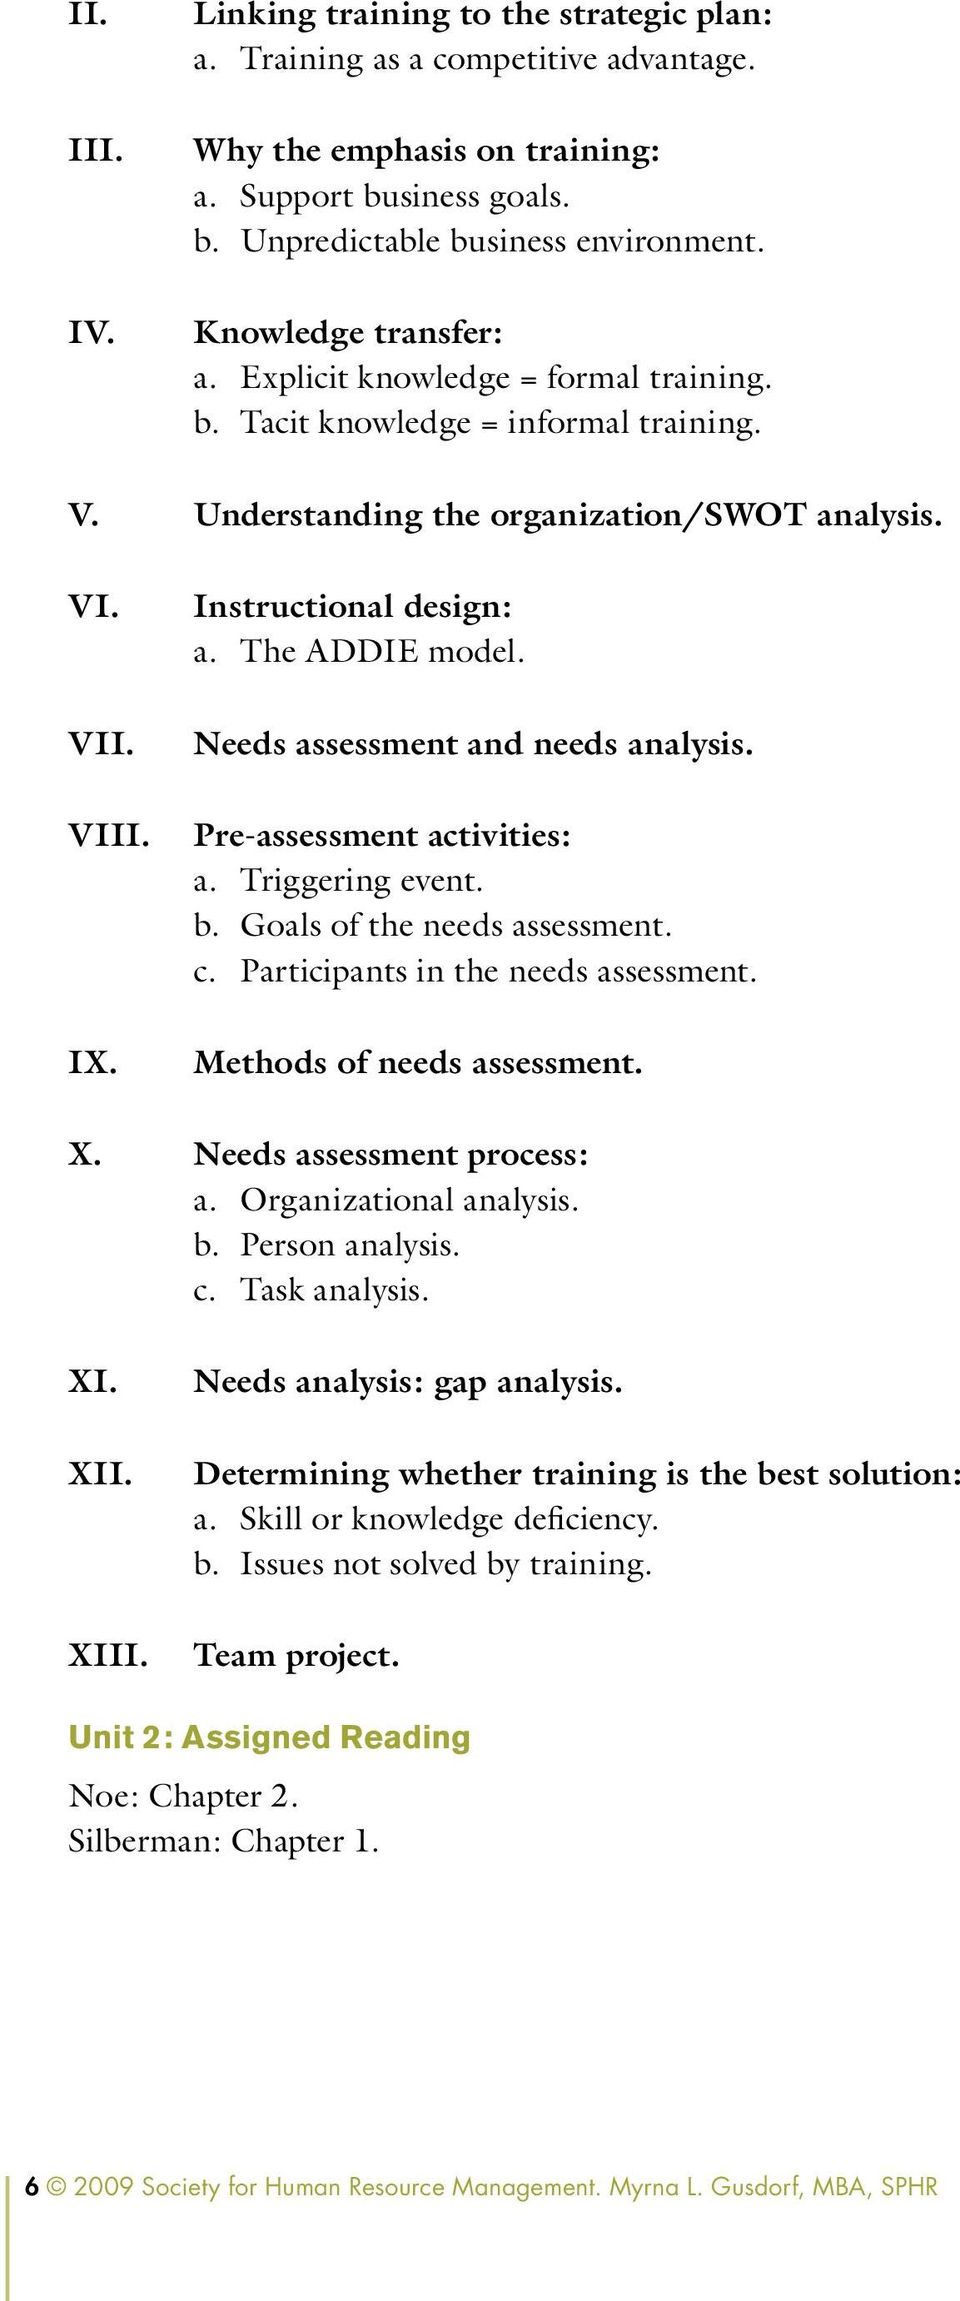 The ADDIE model. Needs assessment and needs analysis. Pre-assessment activities: a. Triggering event. b. Goals of the needs assessment. c. Participants in the needs assessment.